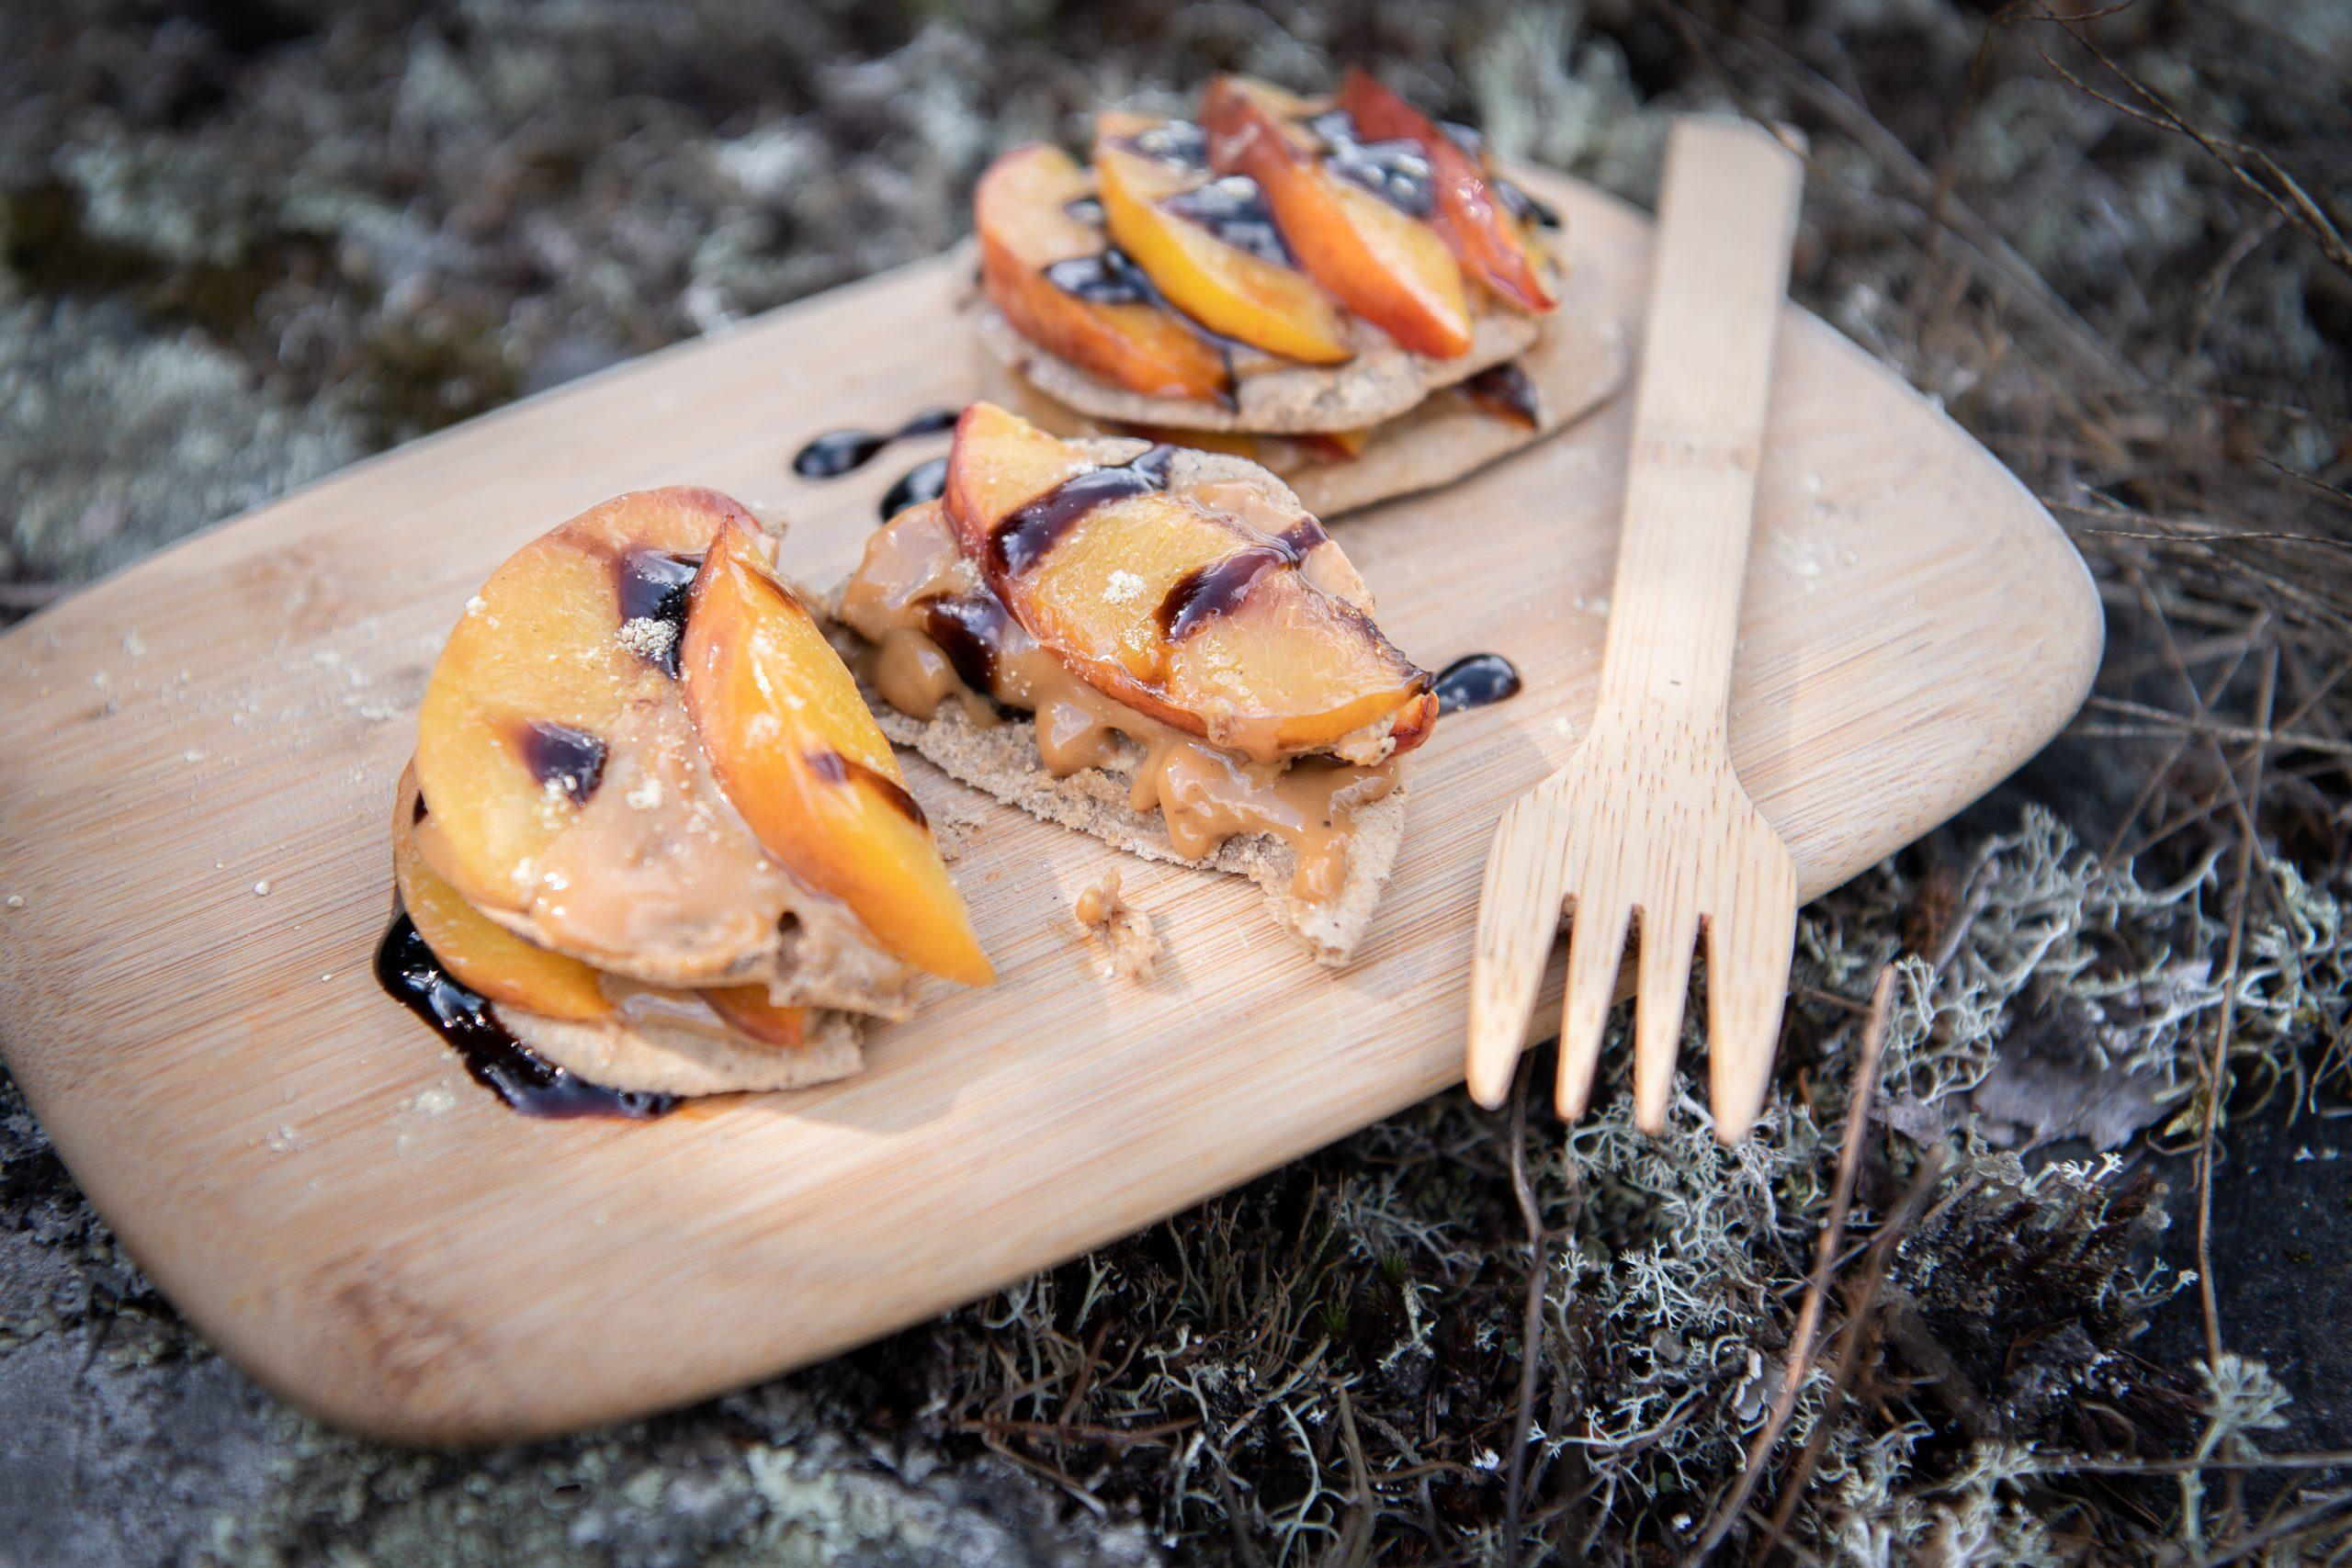 Caramelised nectarines, rough oat cakes with dulce de leche, blueberry balsamic